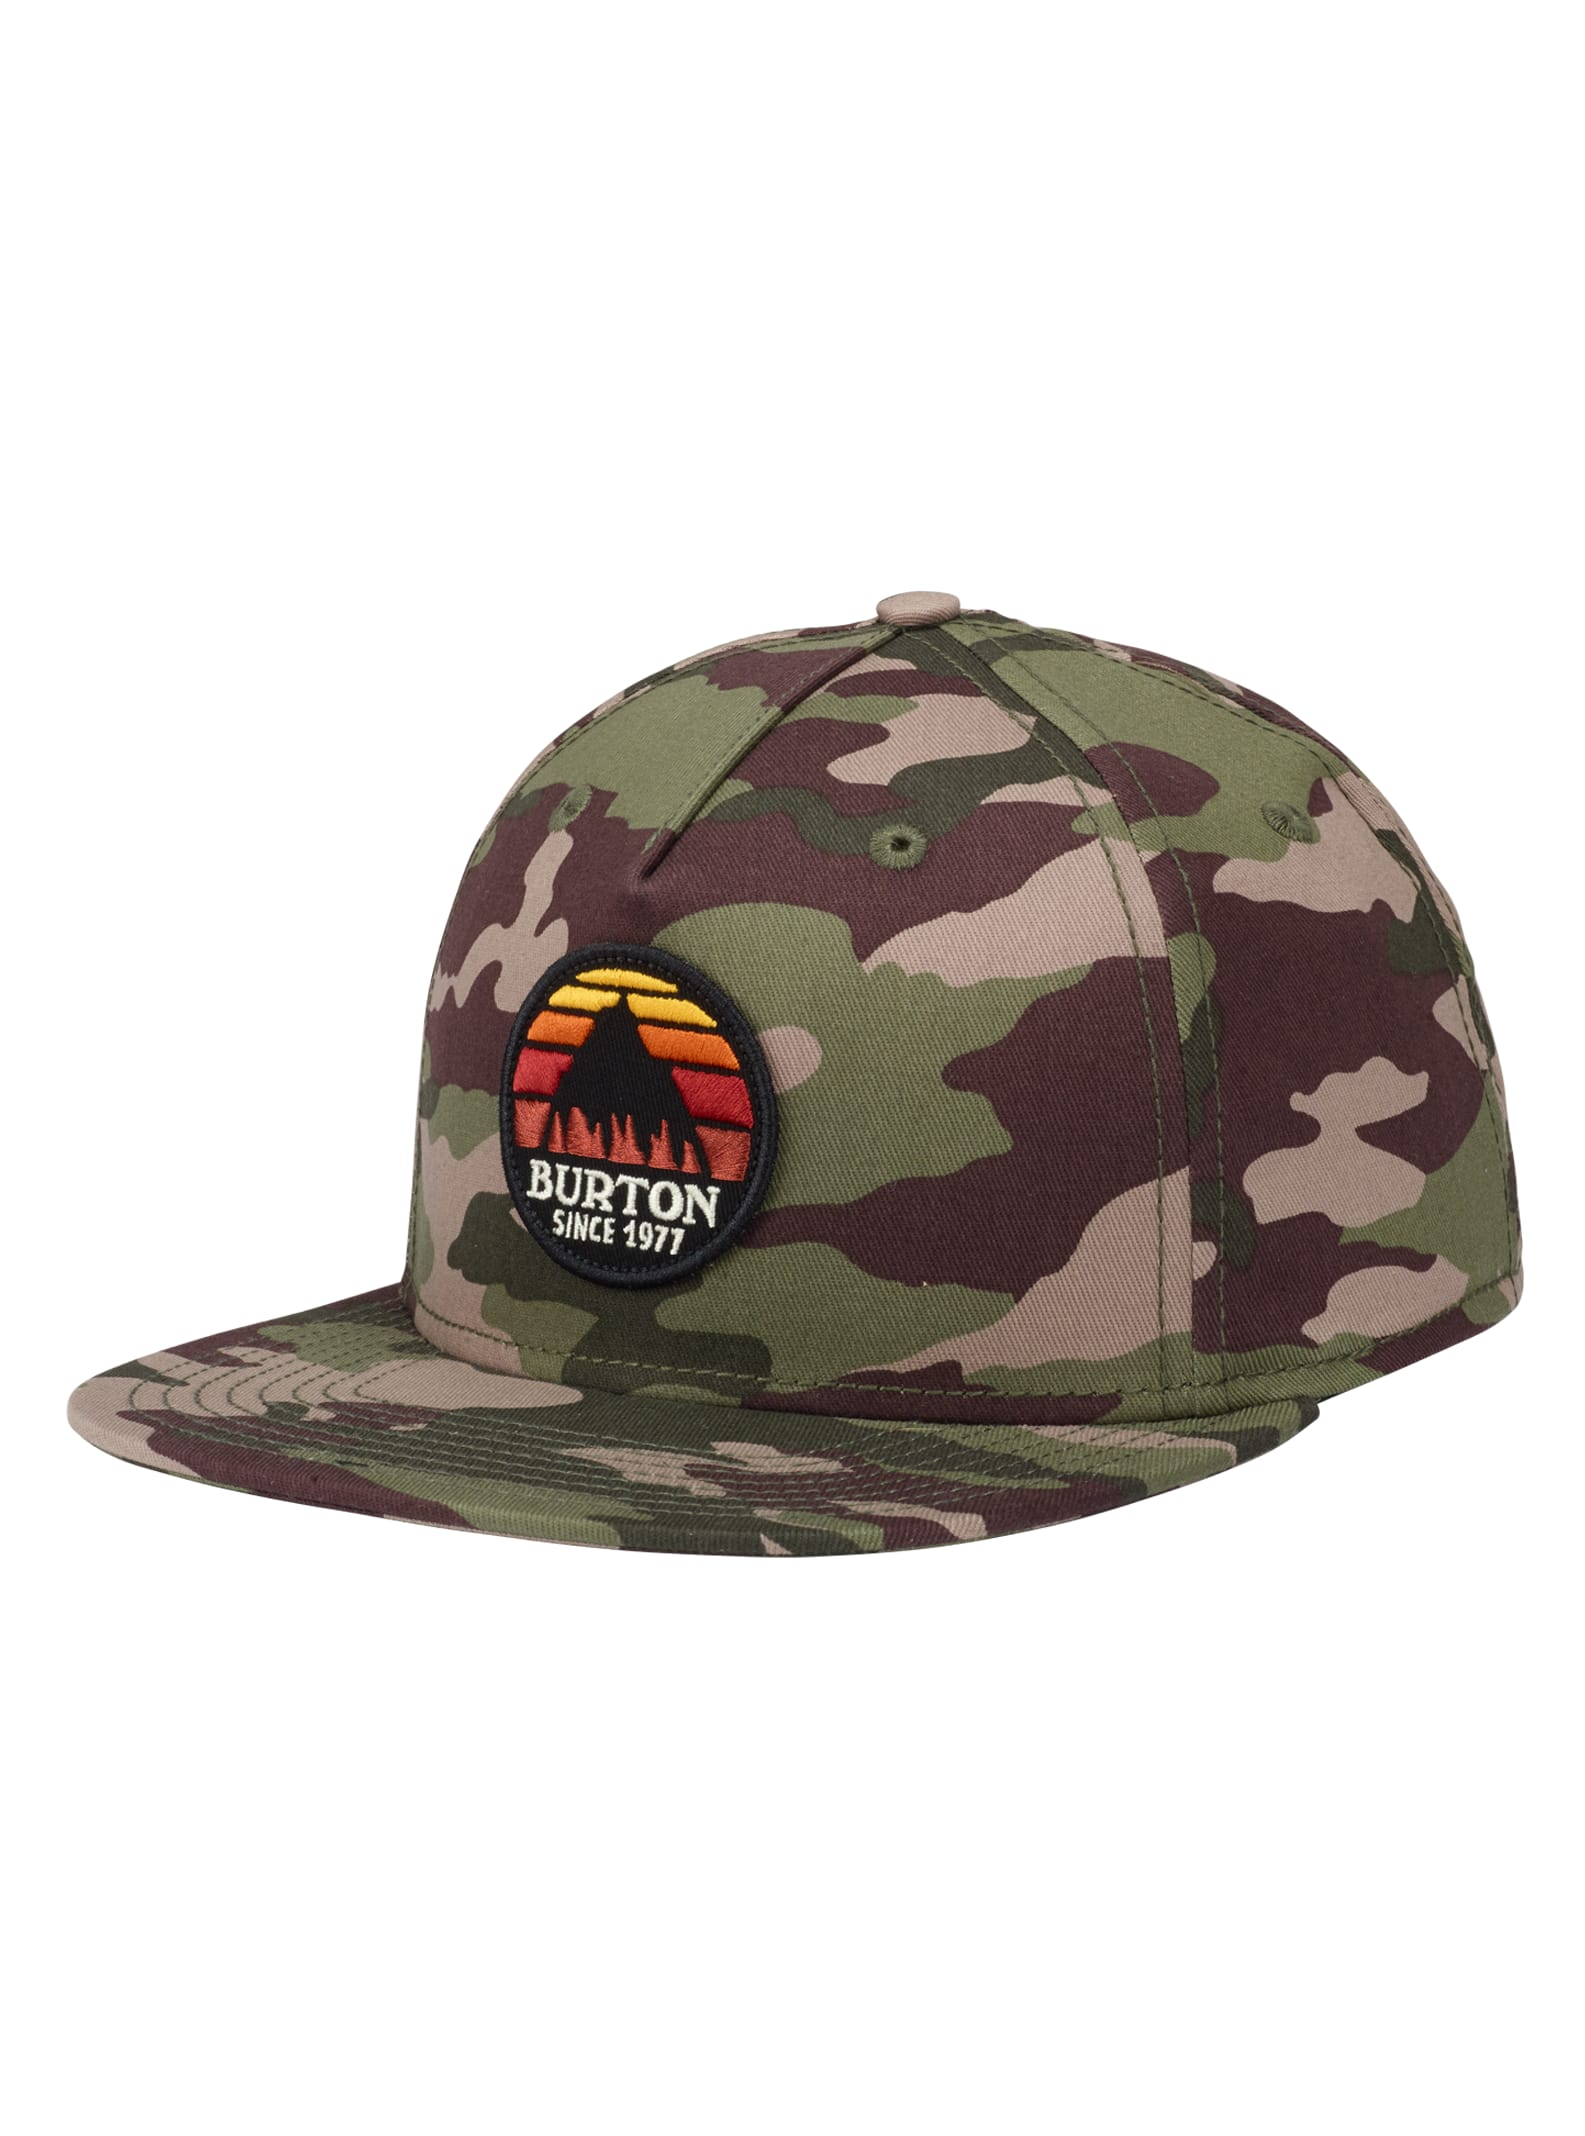 timeless design 6d9d7 9a04b inexpensive chicago white sox new era mlb smalls 59fifty cap cf9de 08fef   purchase camouflage boston red sox fitted hat looser 9mm 483e8 72158